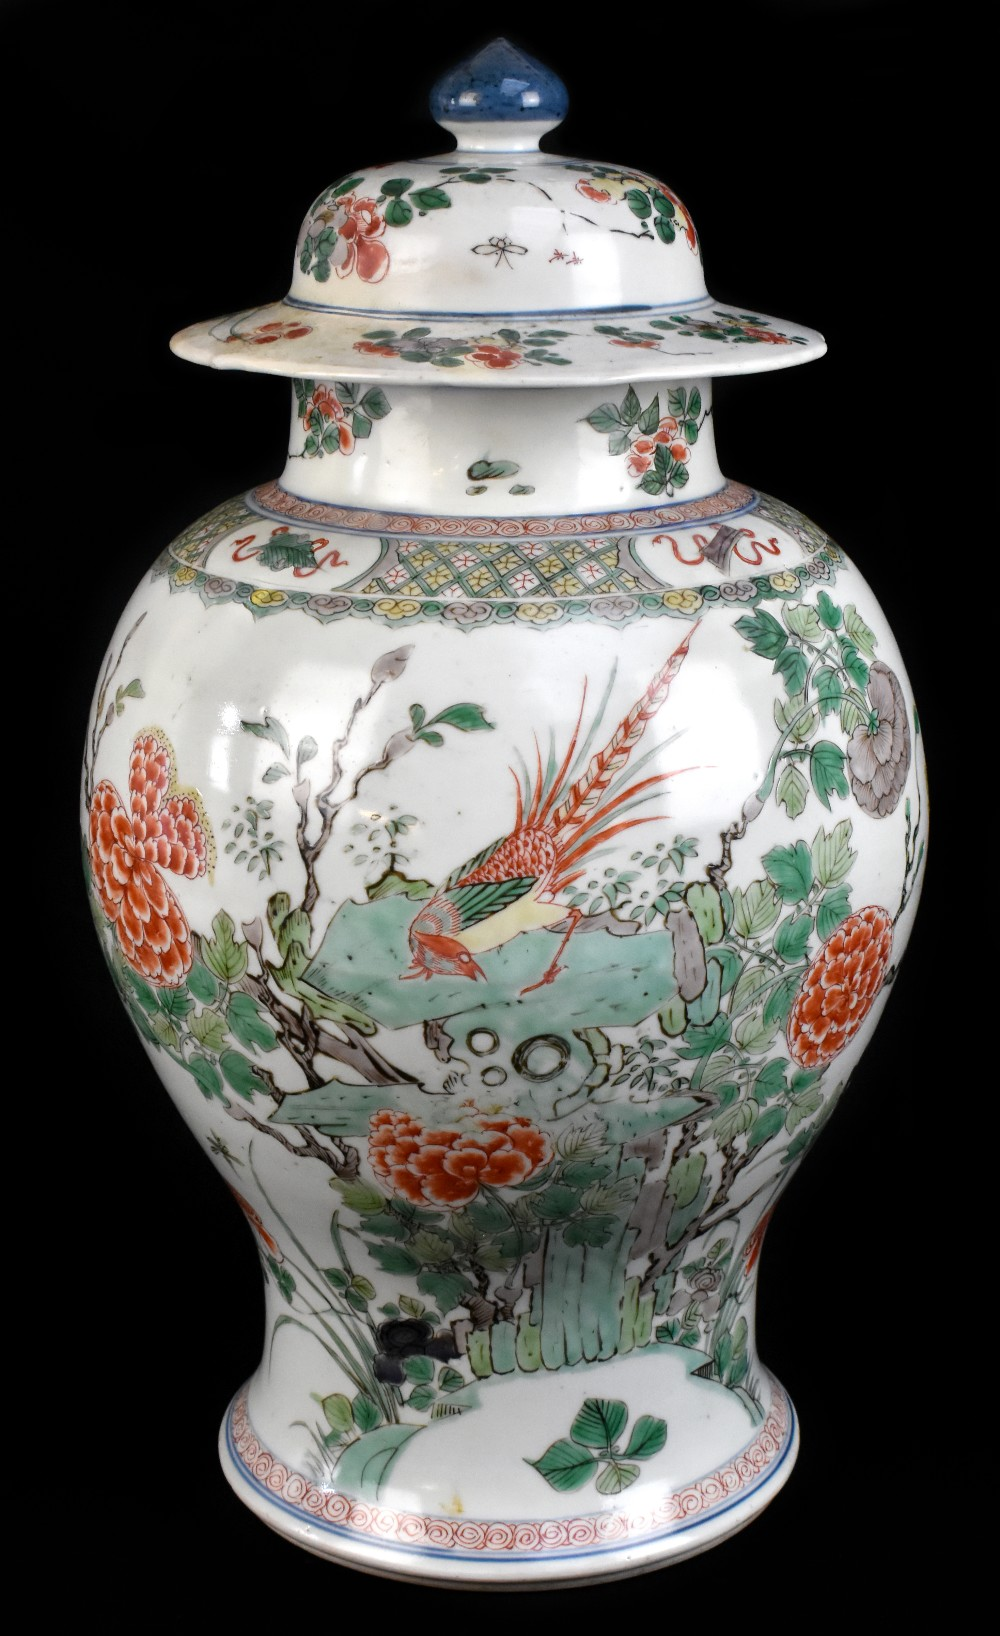 A 19th century Chinese Famille Verte Wucai porcelain temple jar and cover painted with a band of